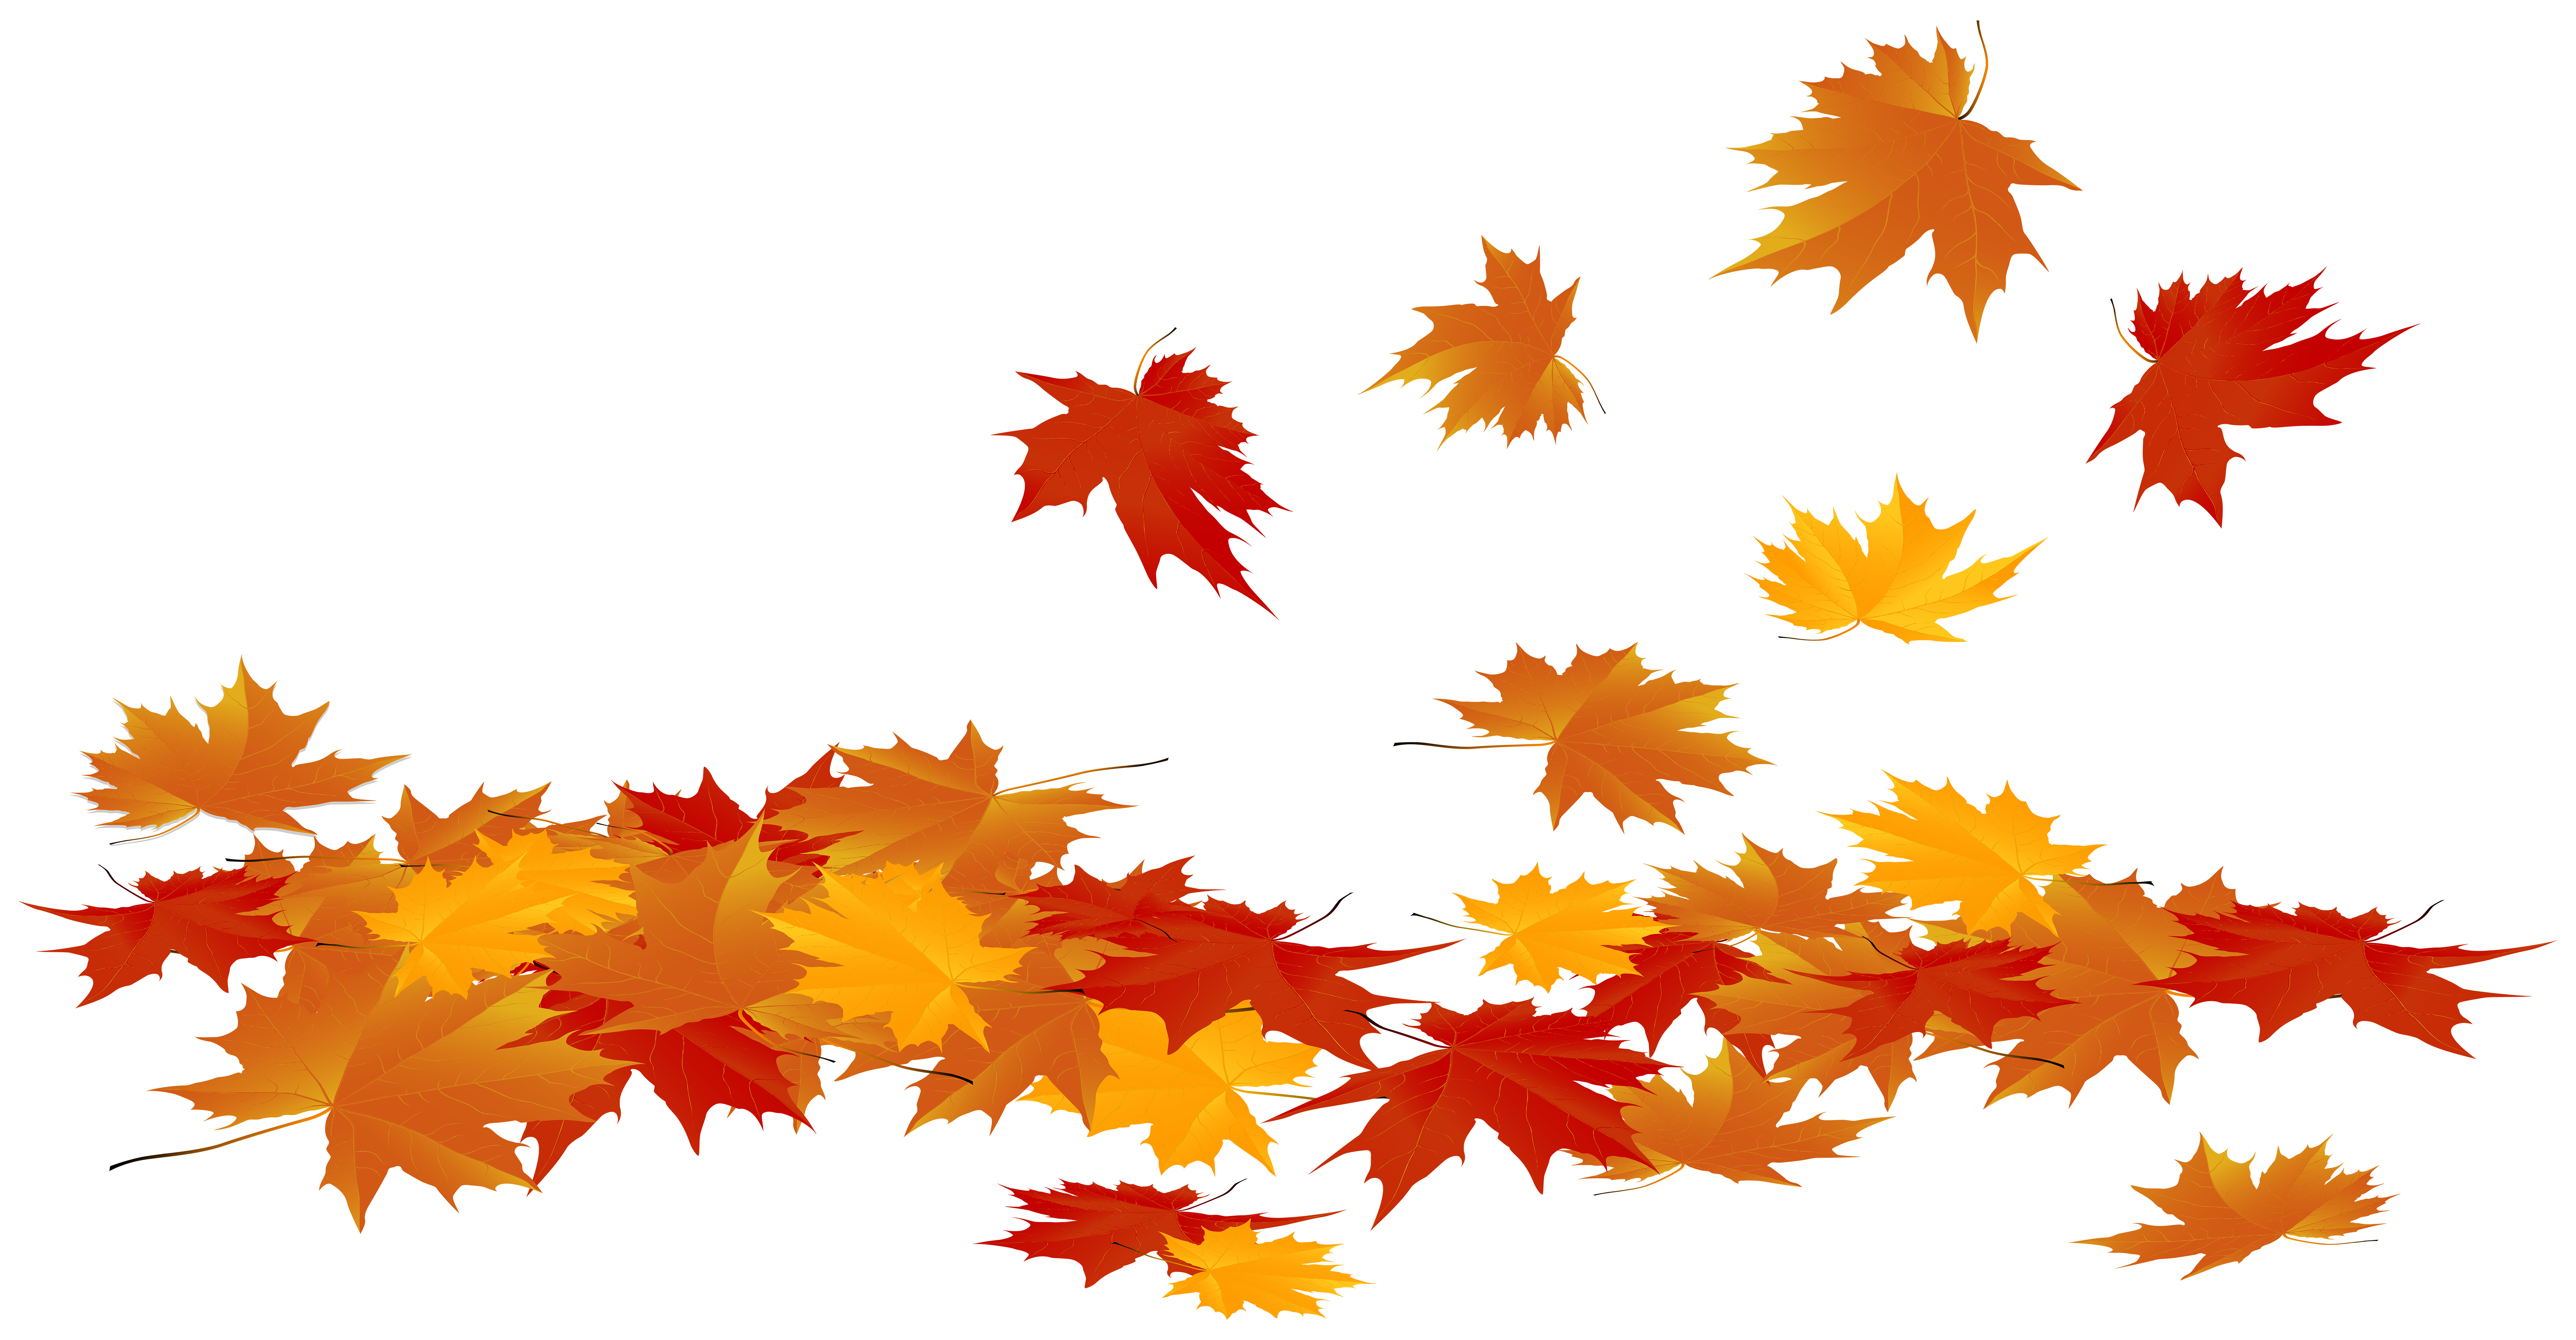 Fall leaves clipart png stock Fallen Autumn Leaves PNG Clip Art Image | Gallery Yopriceville ... stock